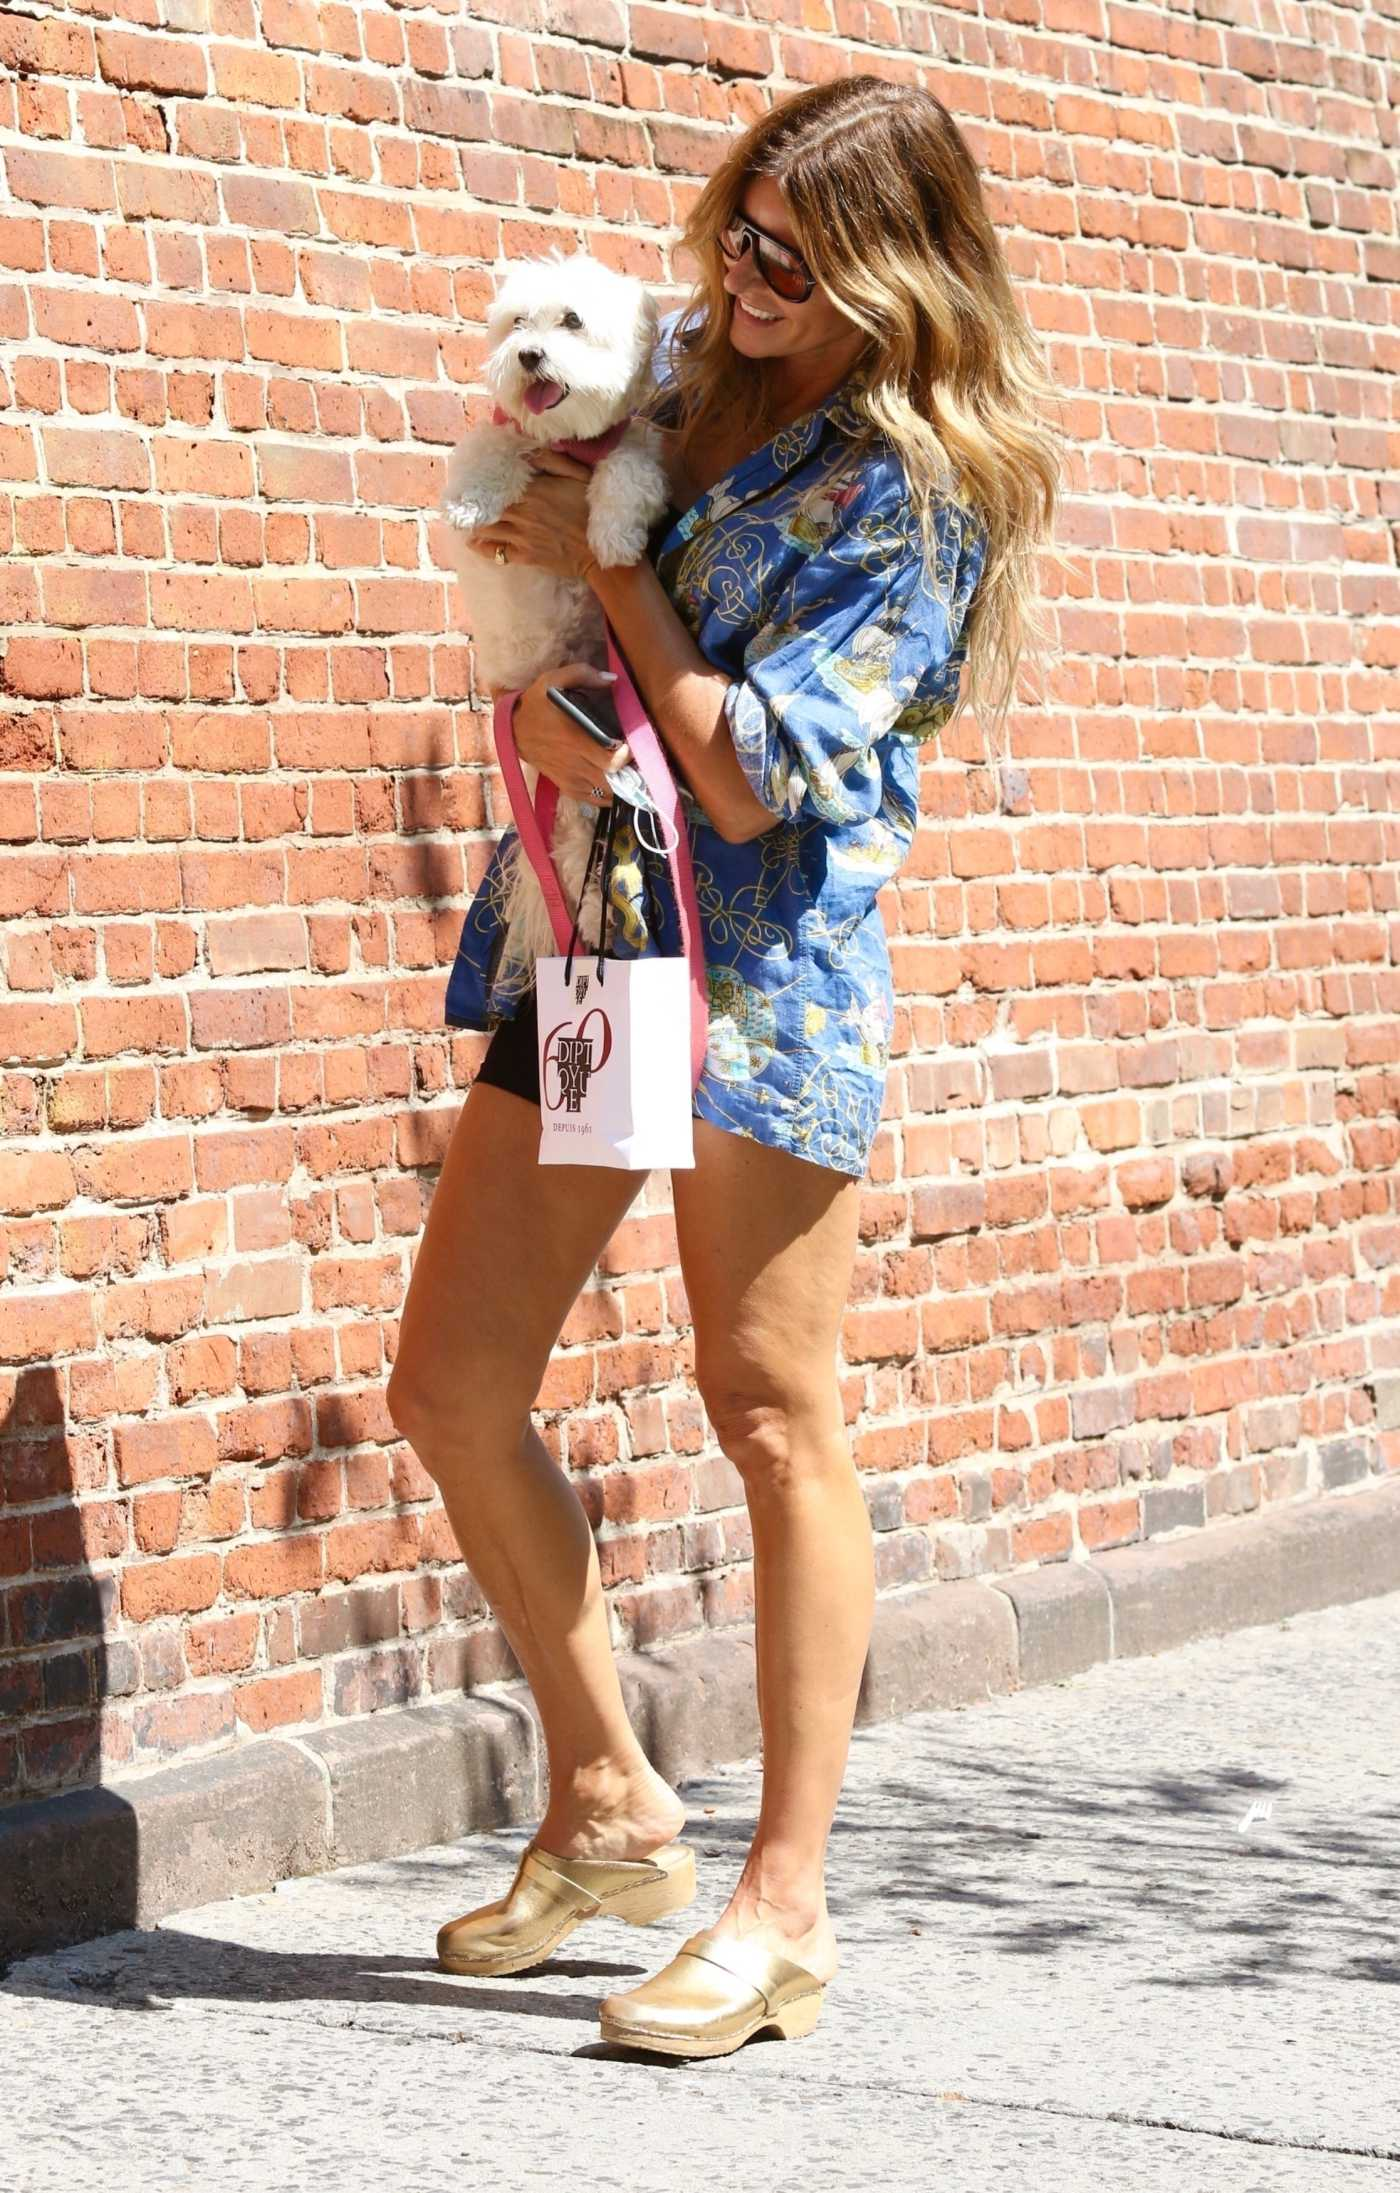 Kelly Bensimon in a Floral Shirt Walks Her Dog in NYC 08/26/2021